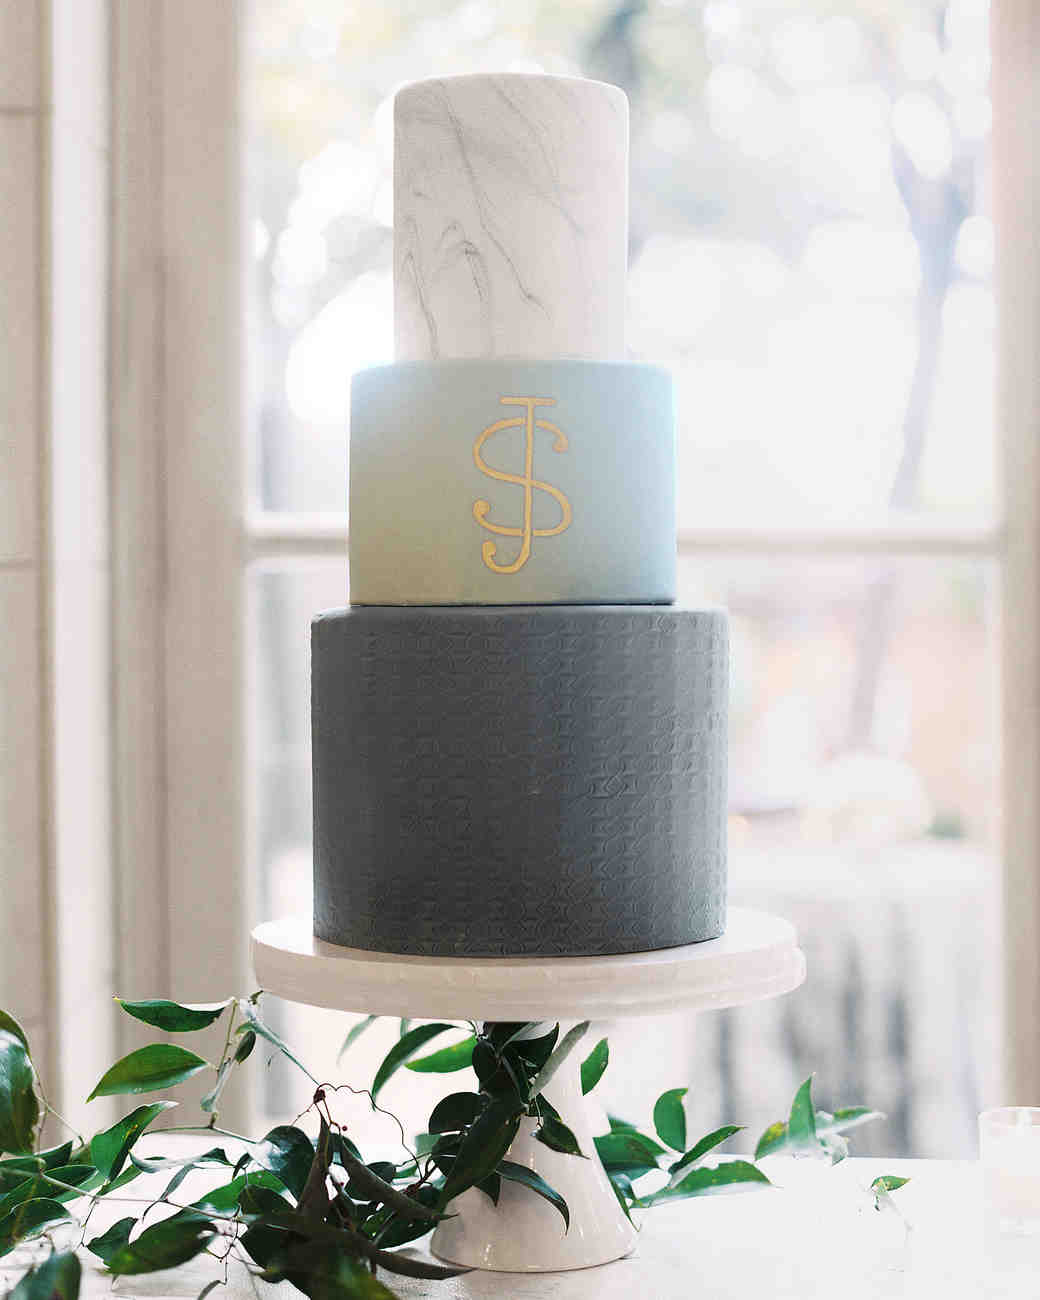 jermaine scott wedding dc bourbon monogram cake